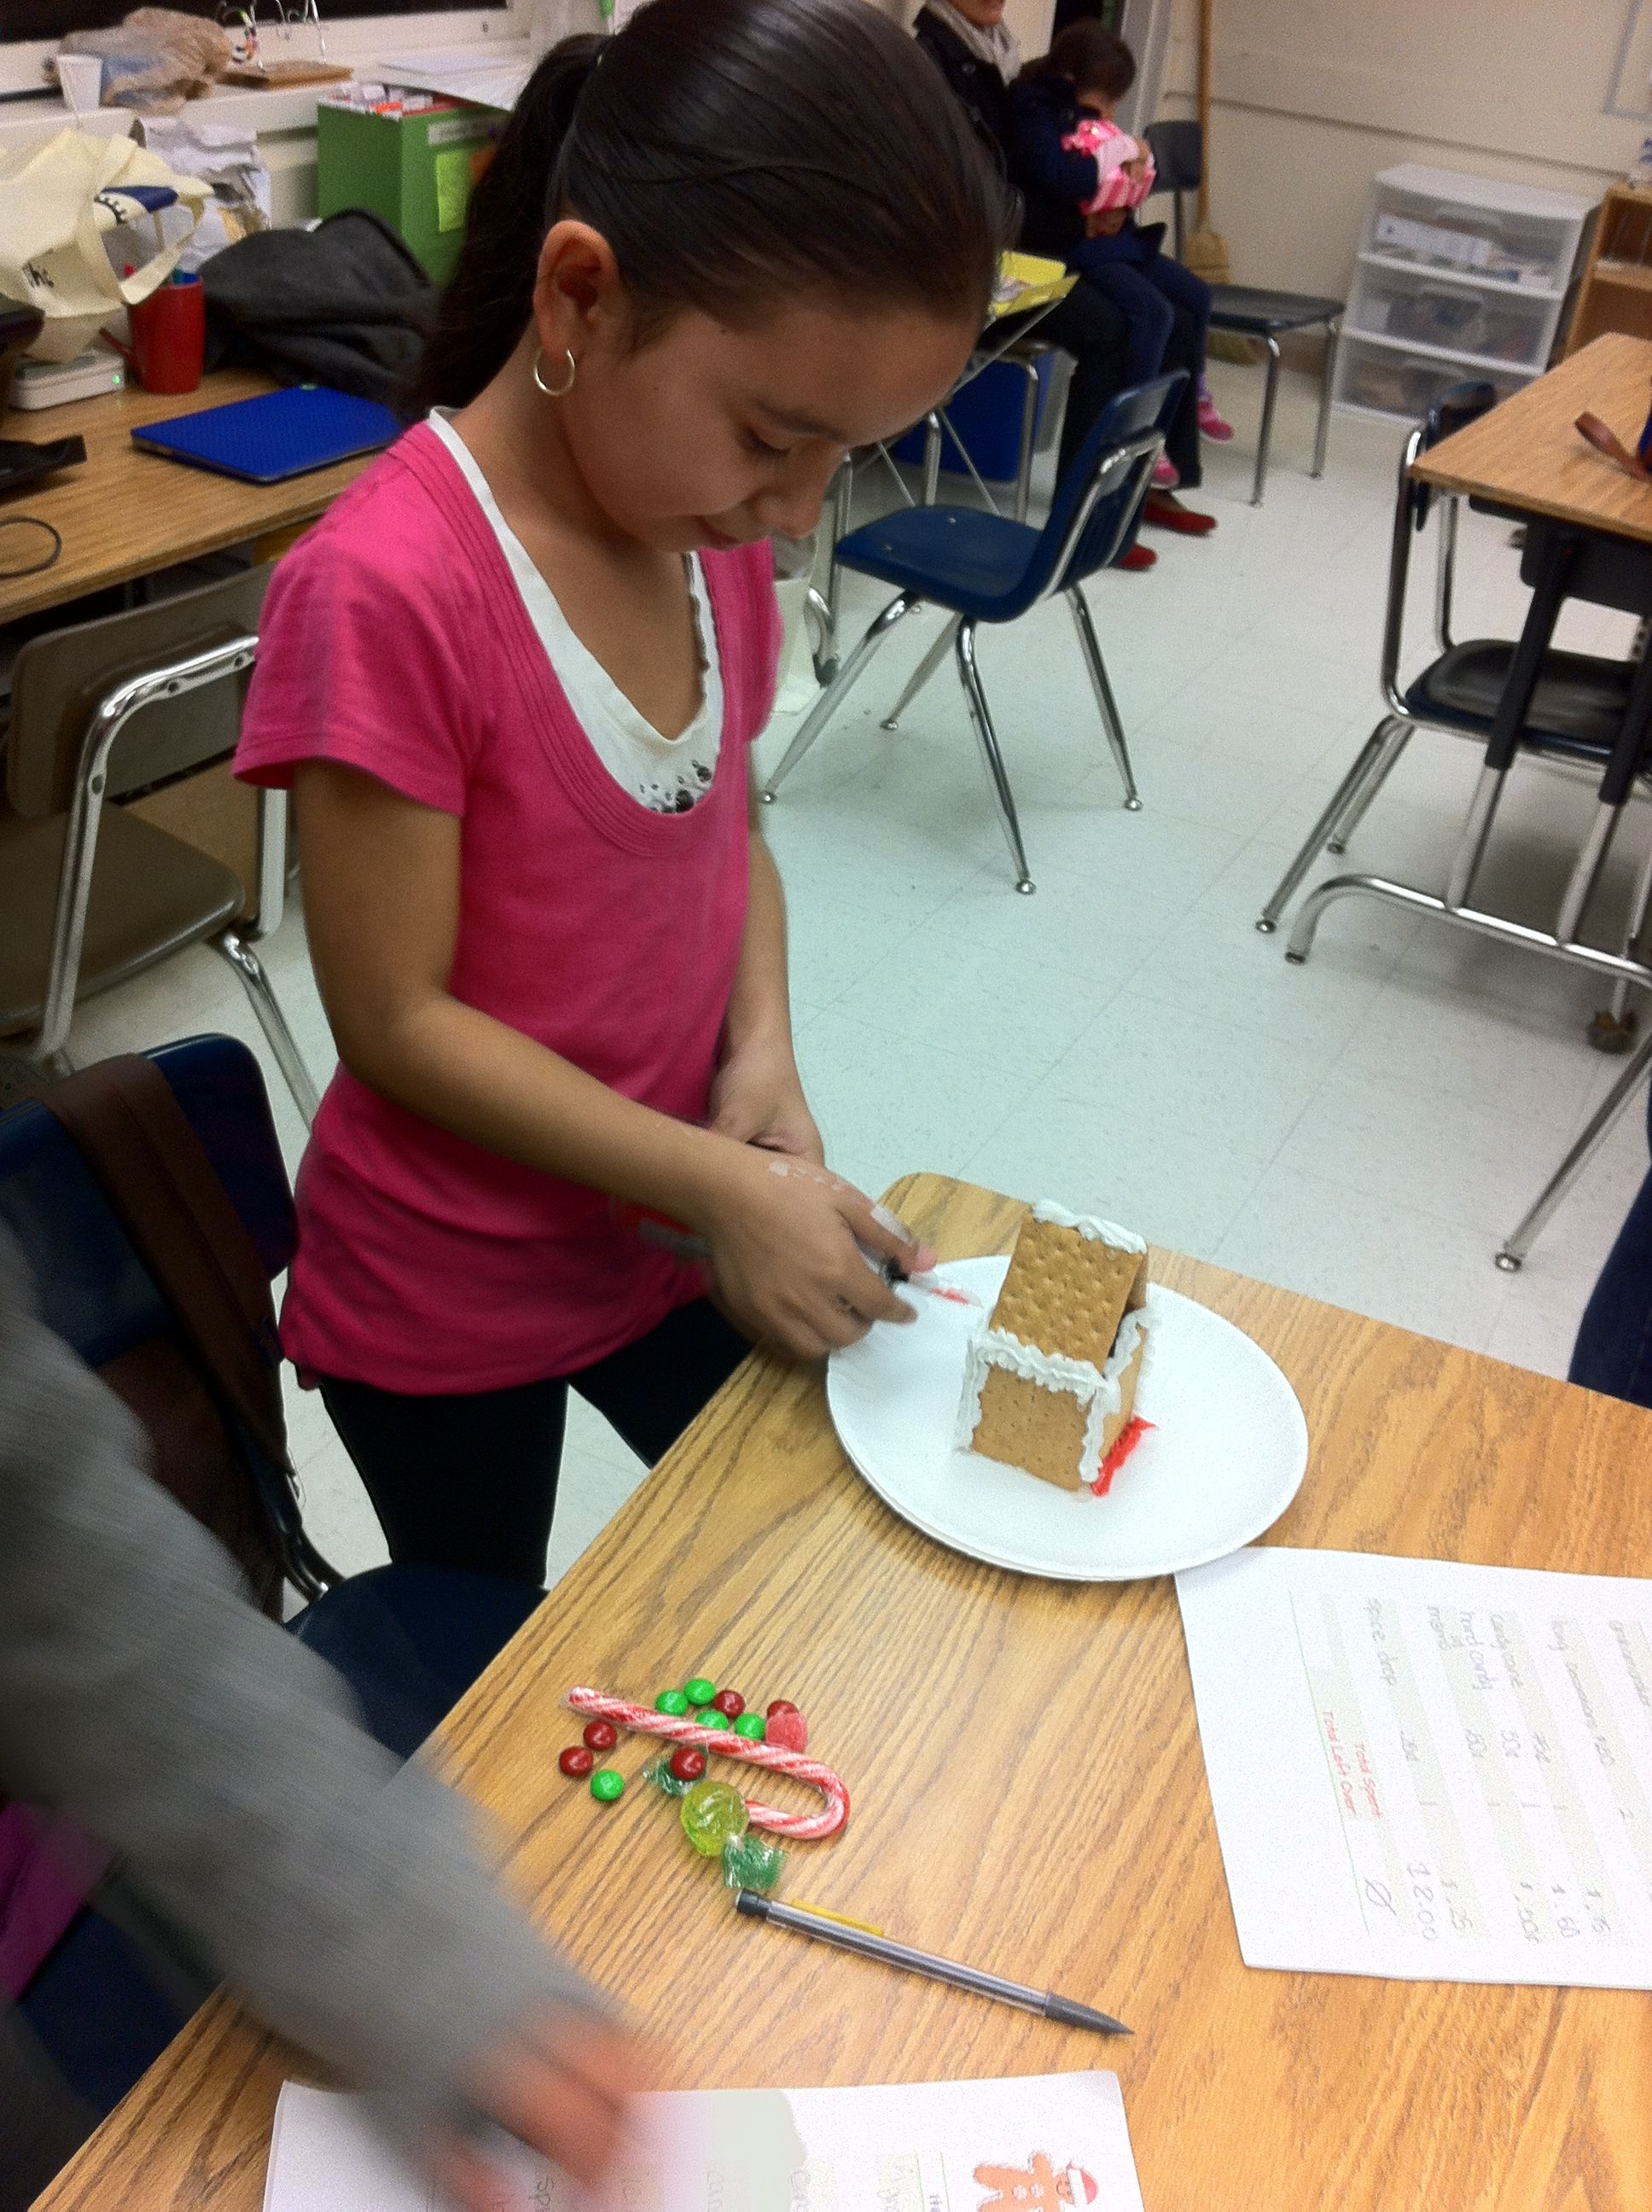 Gingerbread House In Process